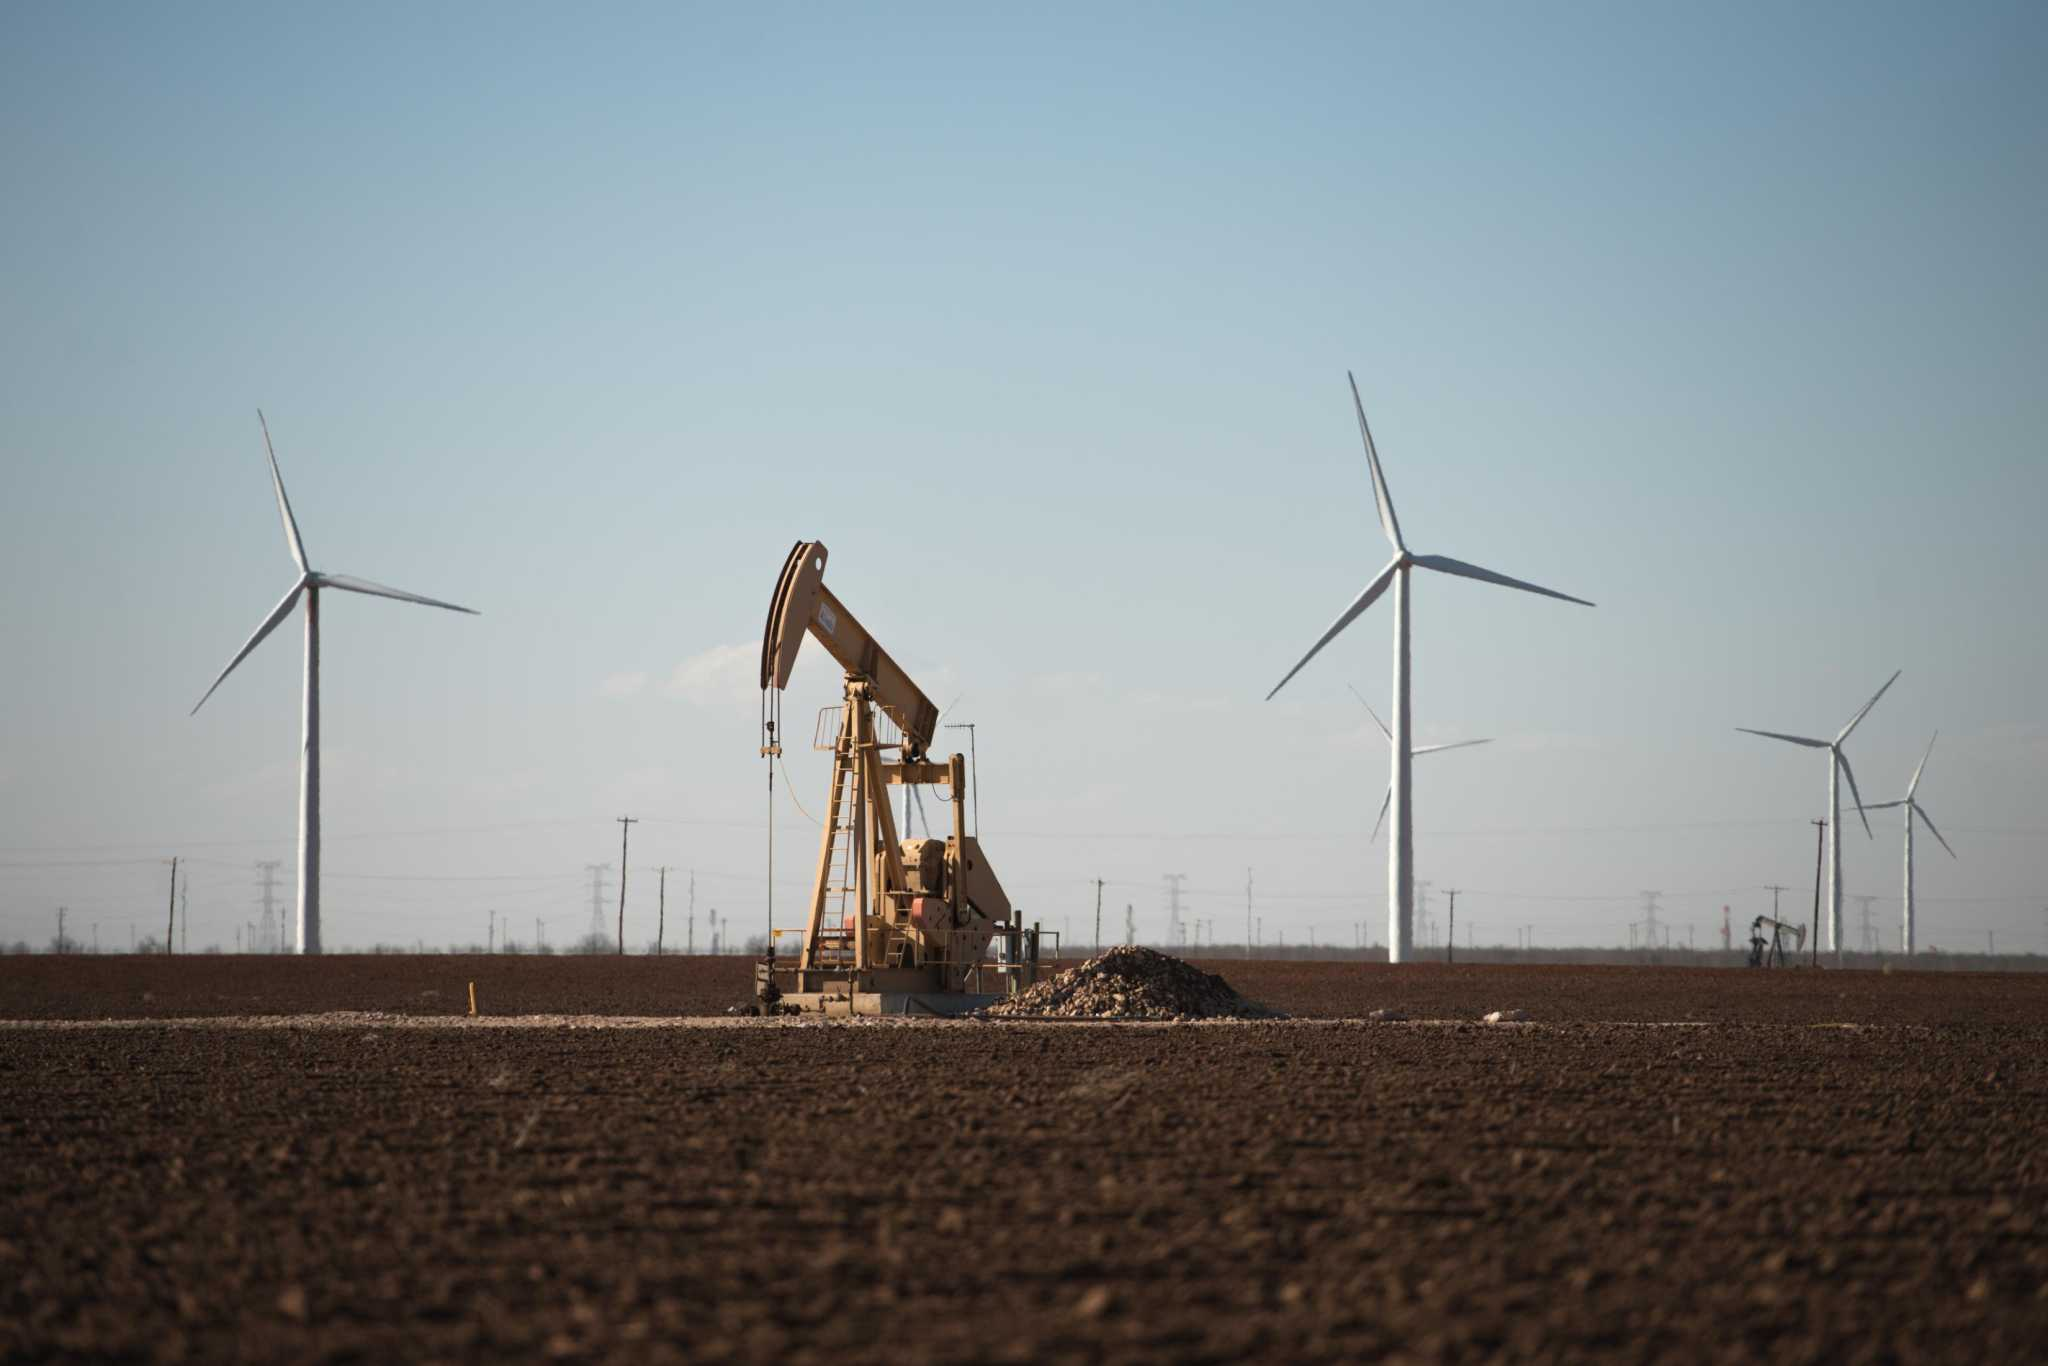 houstonchronicle.com - Shelby Webb - Renewable energy and oil wage battle for power in Texas land rights case